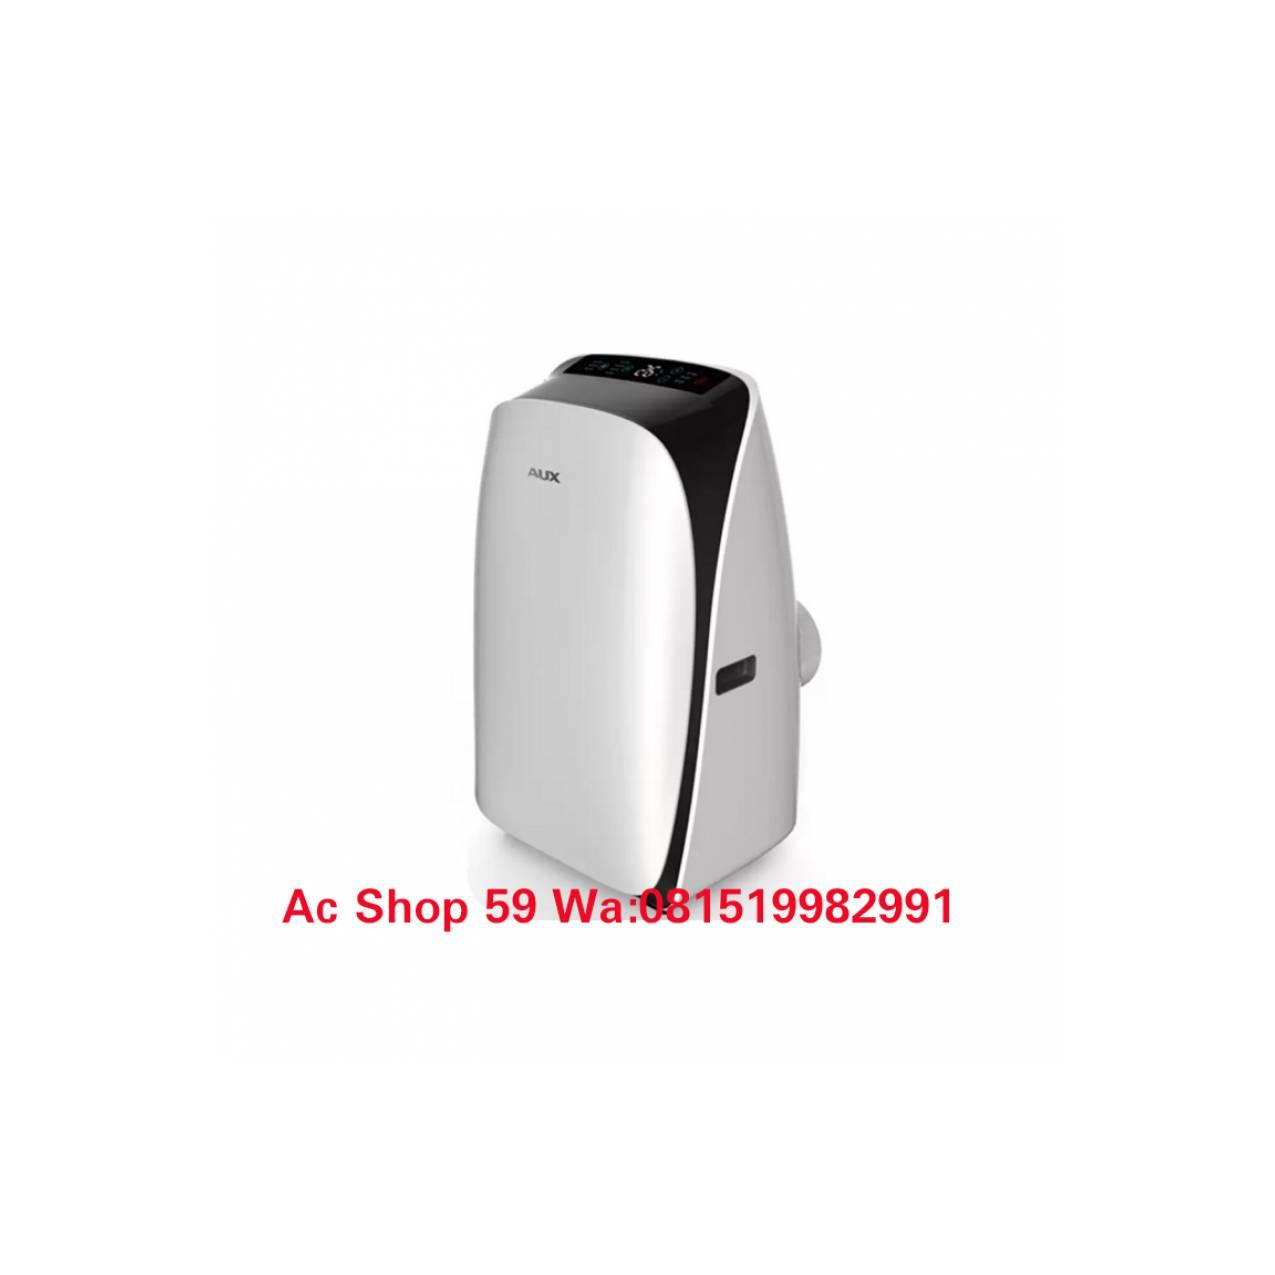 AC PORTABLE 1.5 PK AUX AM-12 A4/LR1 PINGUIN SERIES PROMO